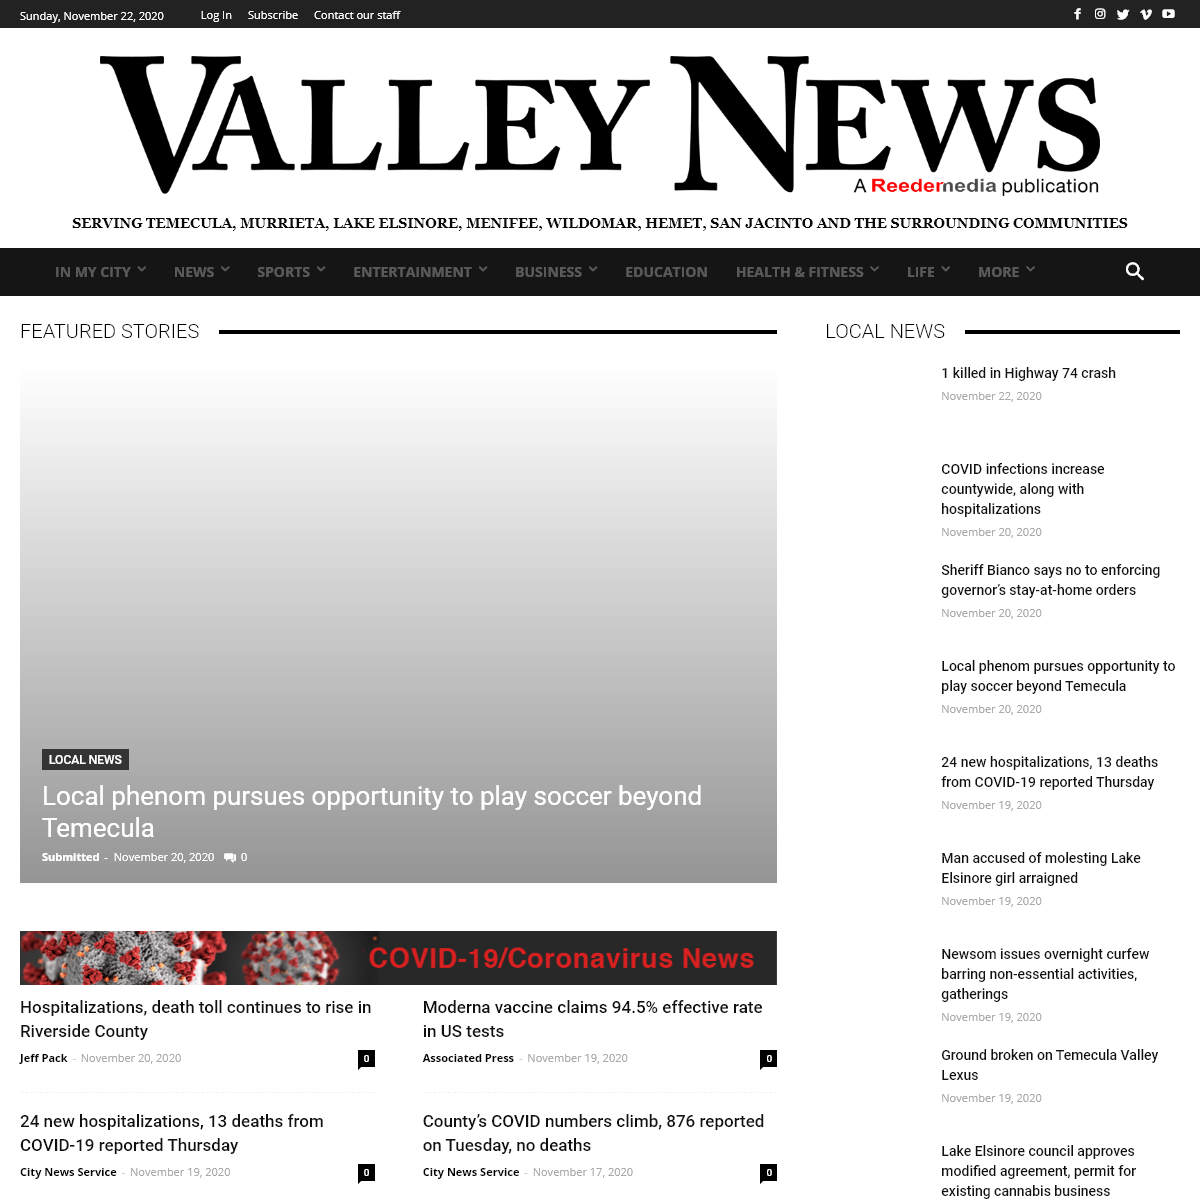 Valley News